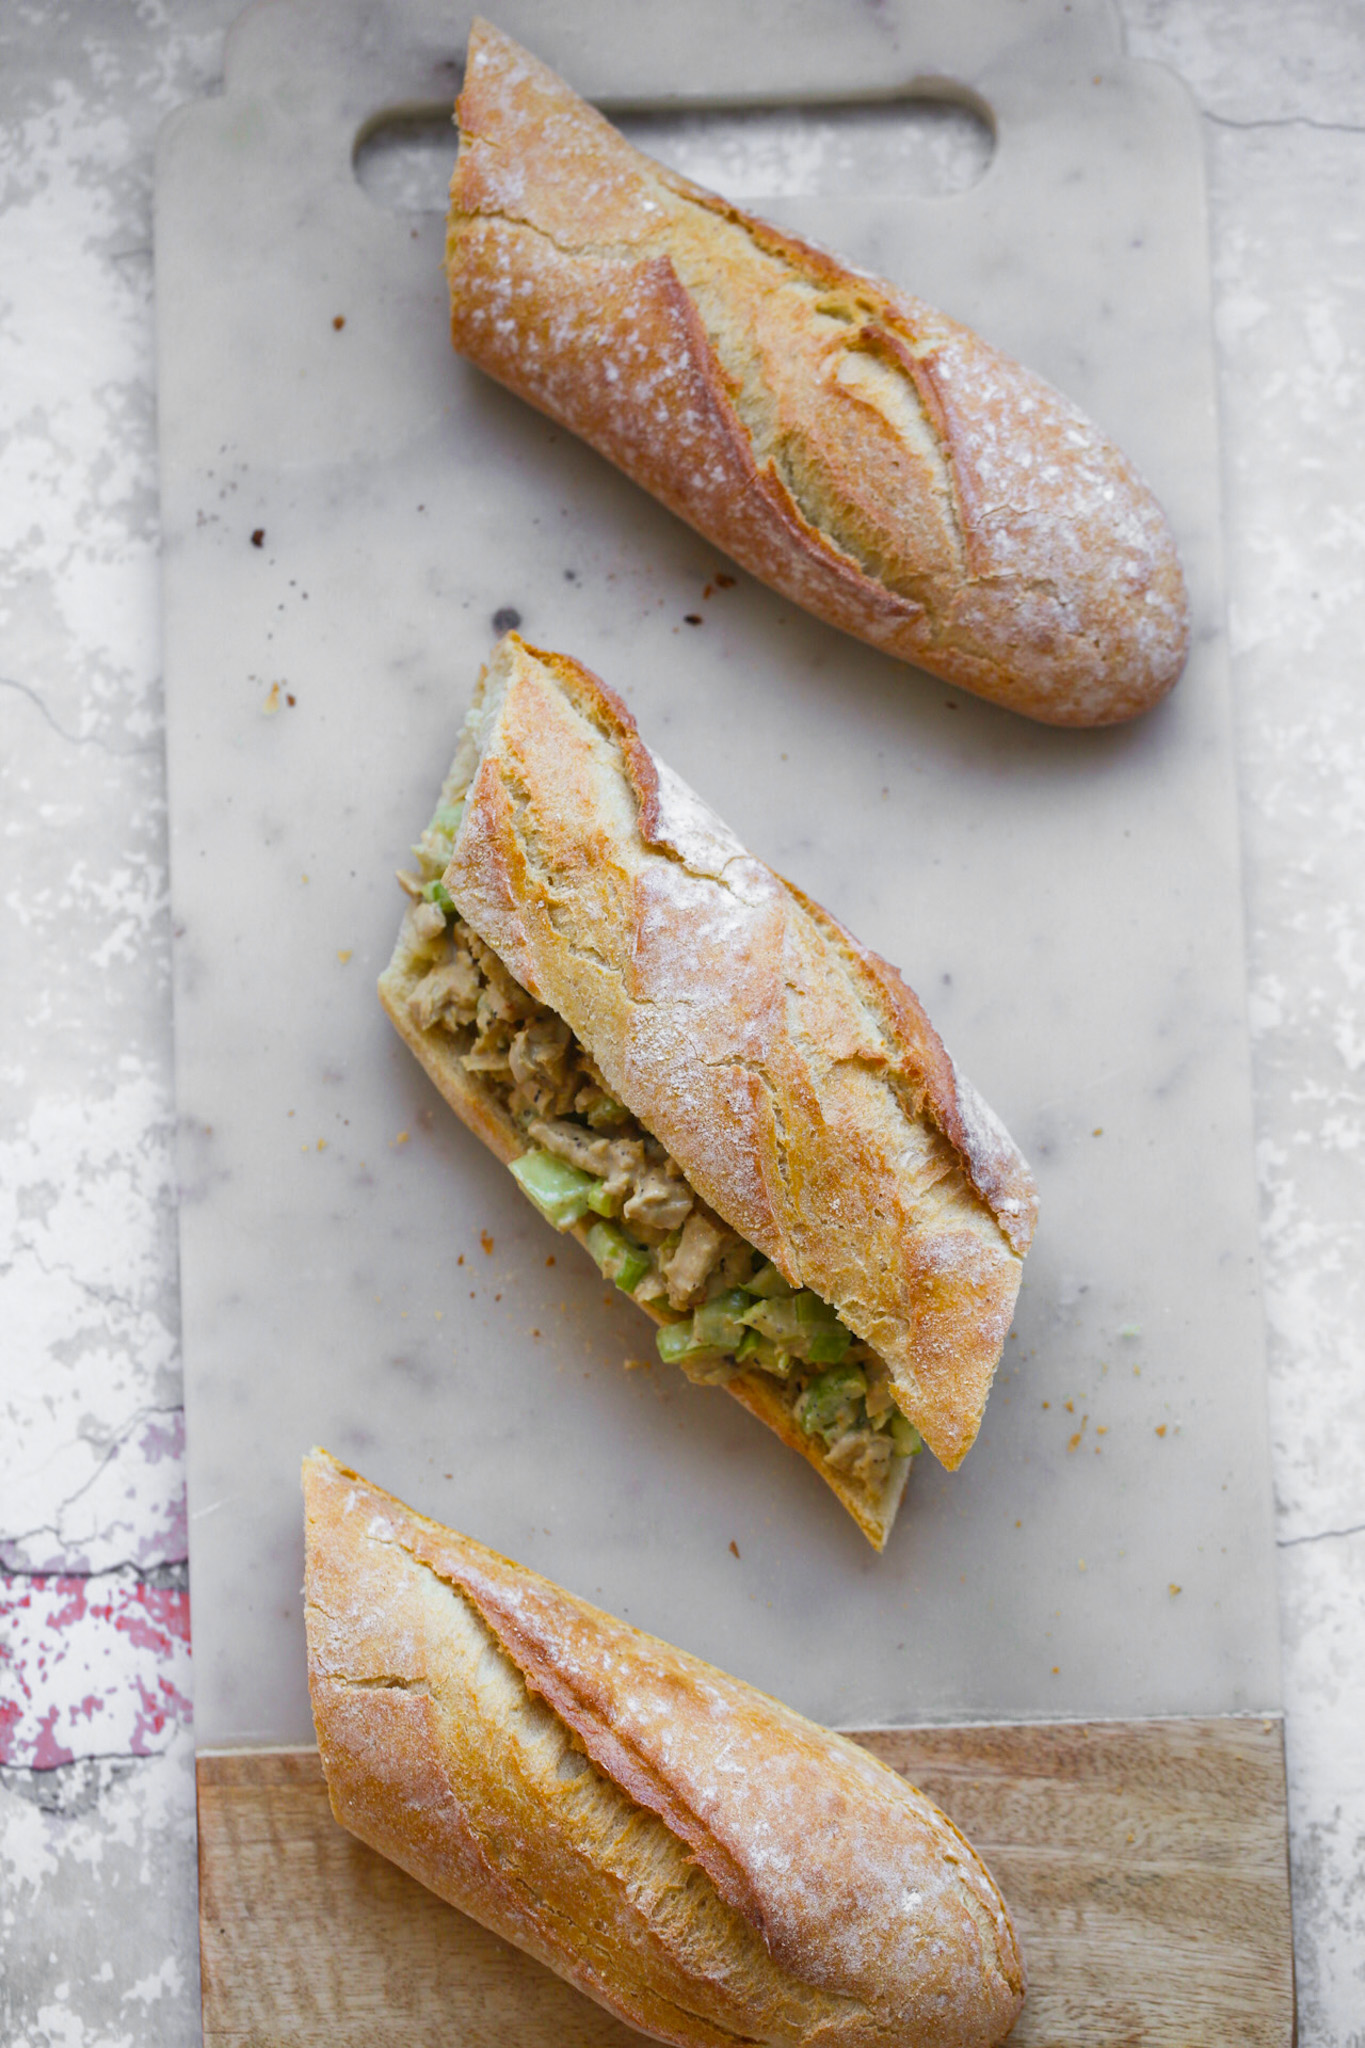 chick'n salad on french bread